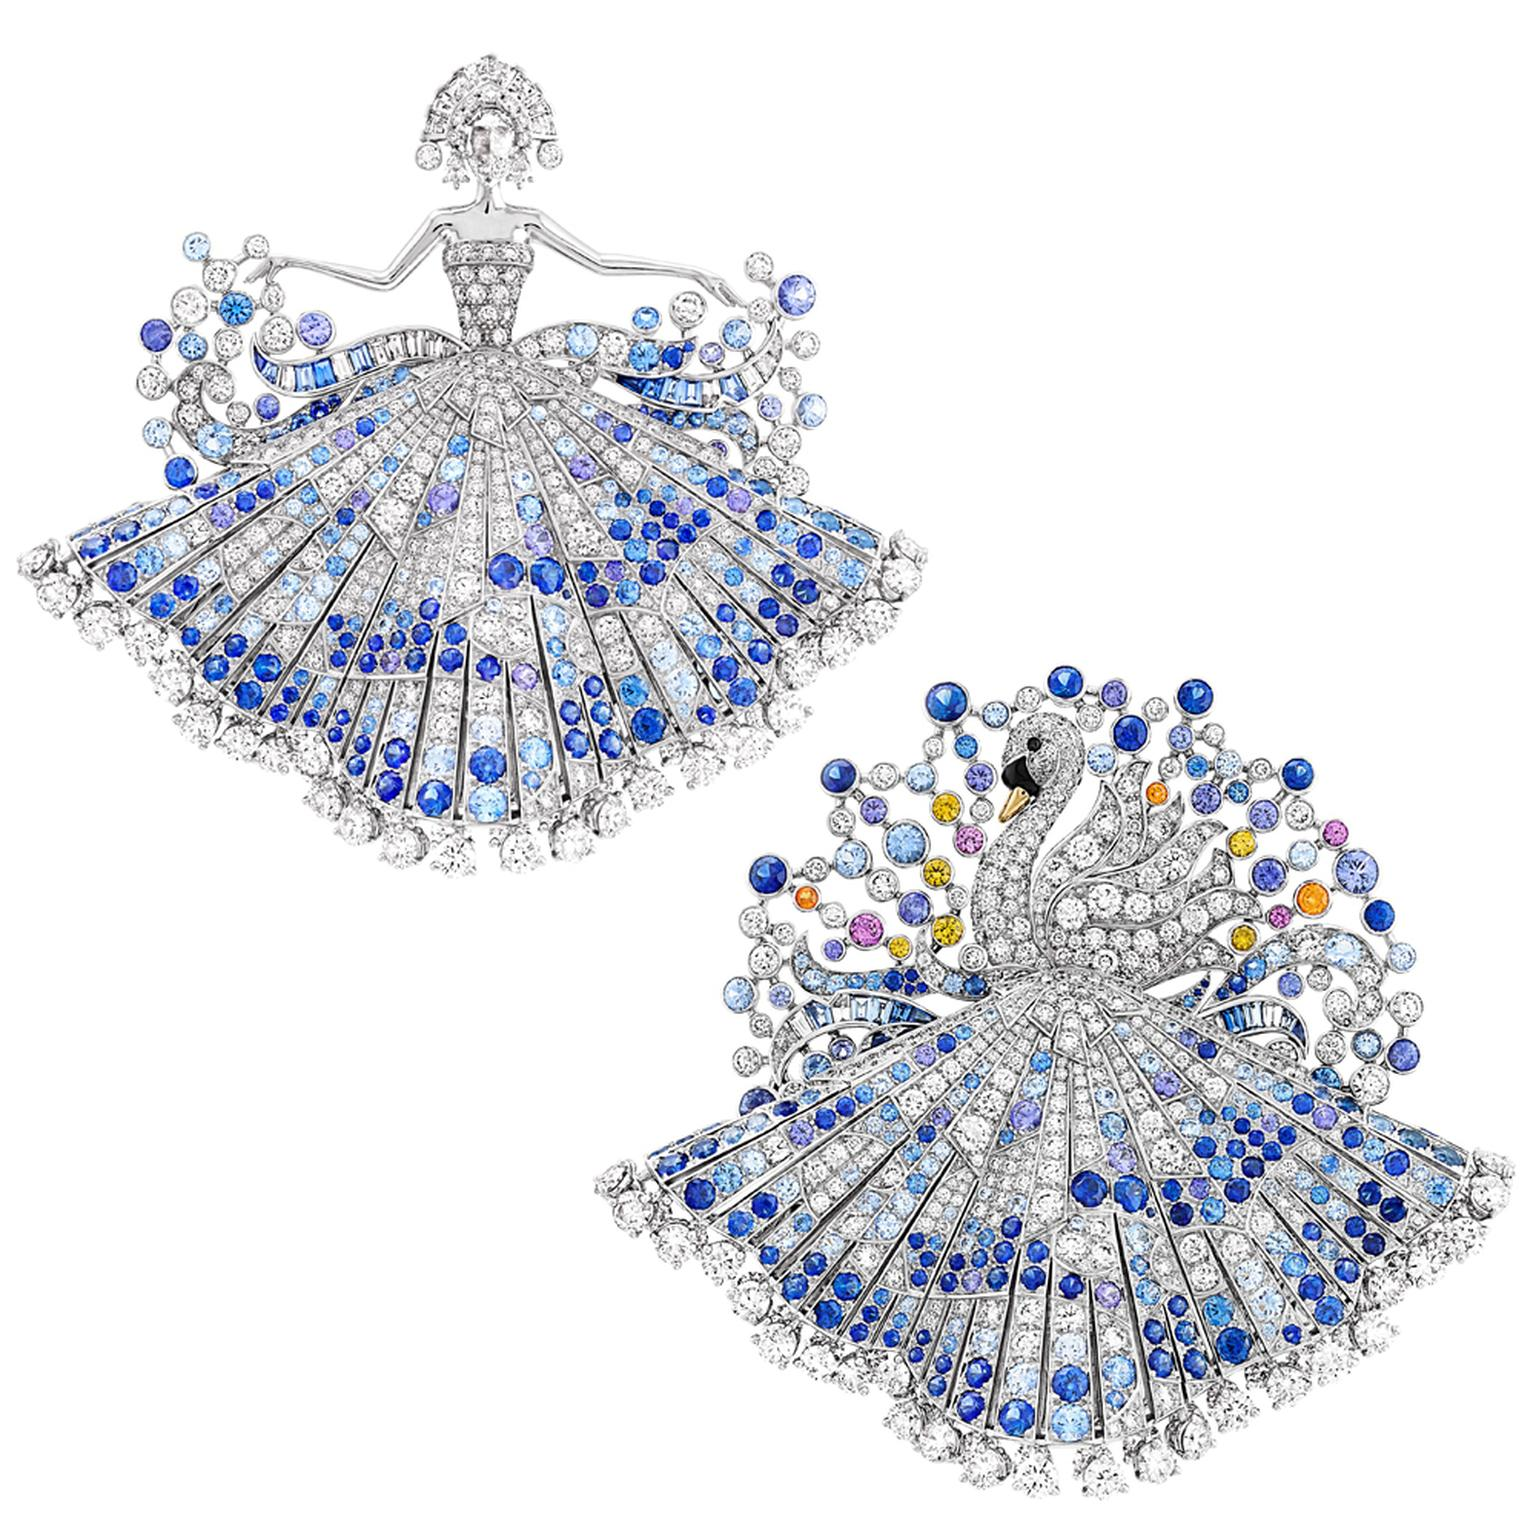 Van Cleef & Arpels Le Secret Metamorphose du Cygne brooch